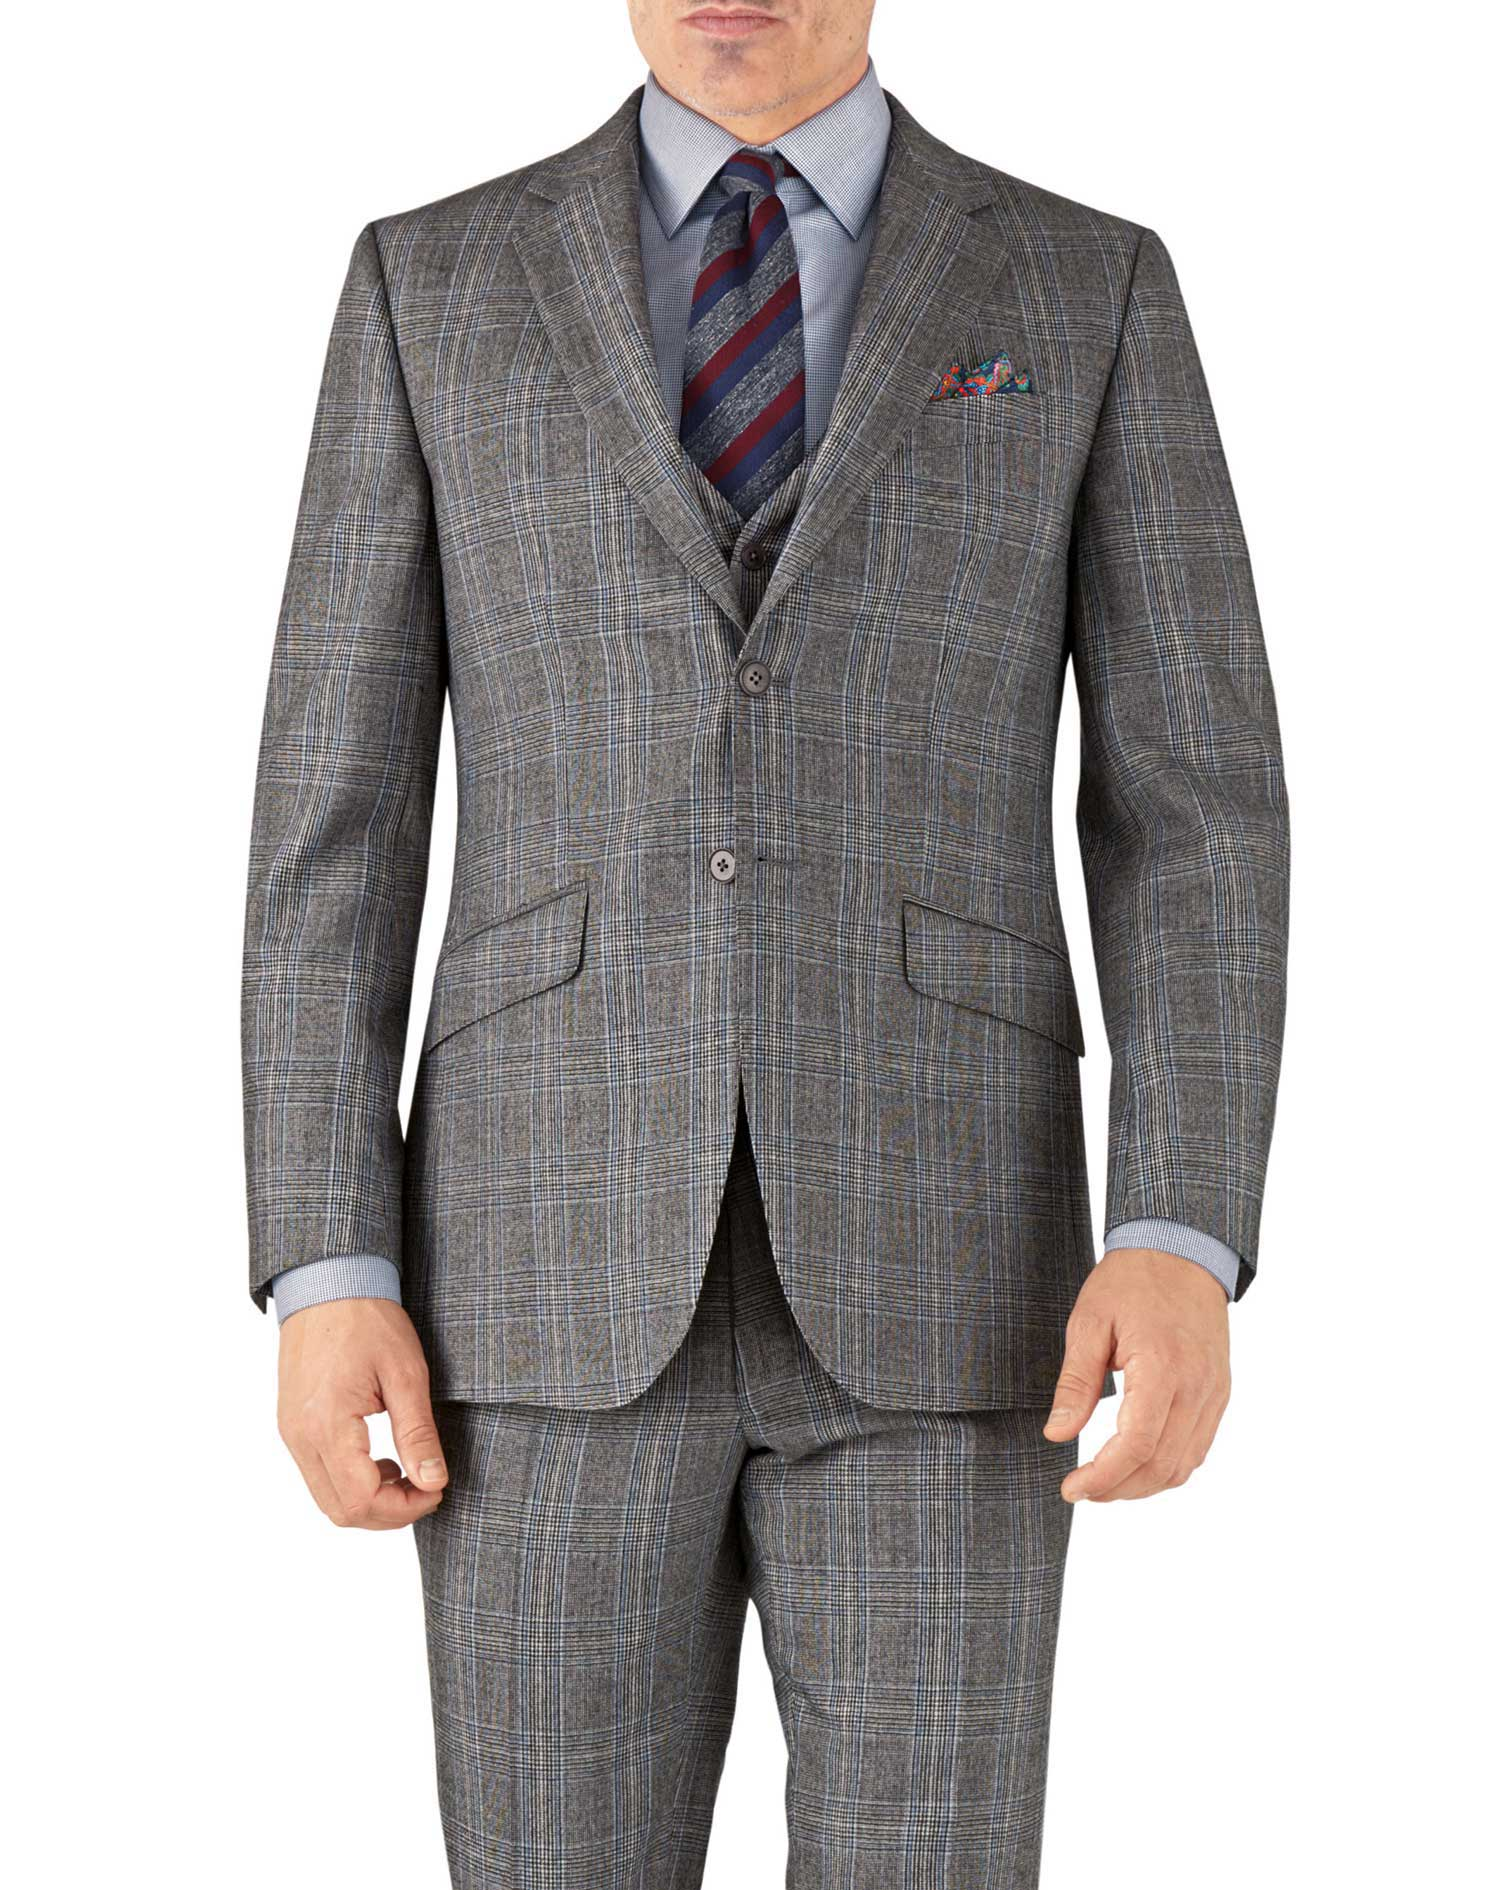 Silver Prince Of Wales Slim Fit Flannel Business Suit Wool Jacket Size 36 Short by Charles Tyrwhitt